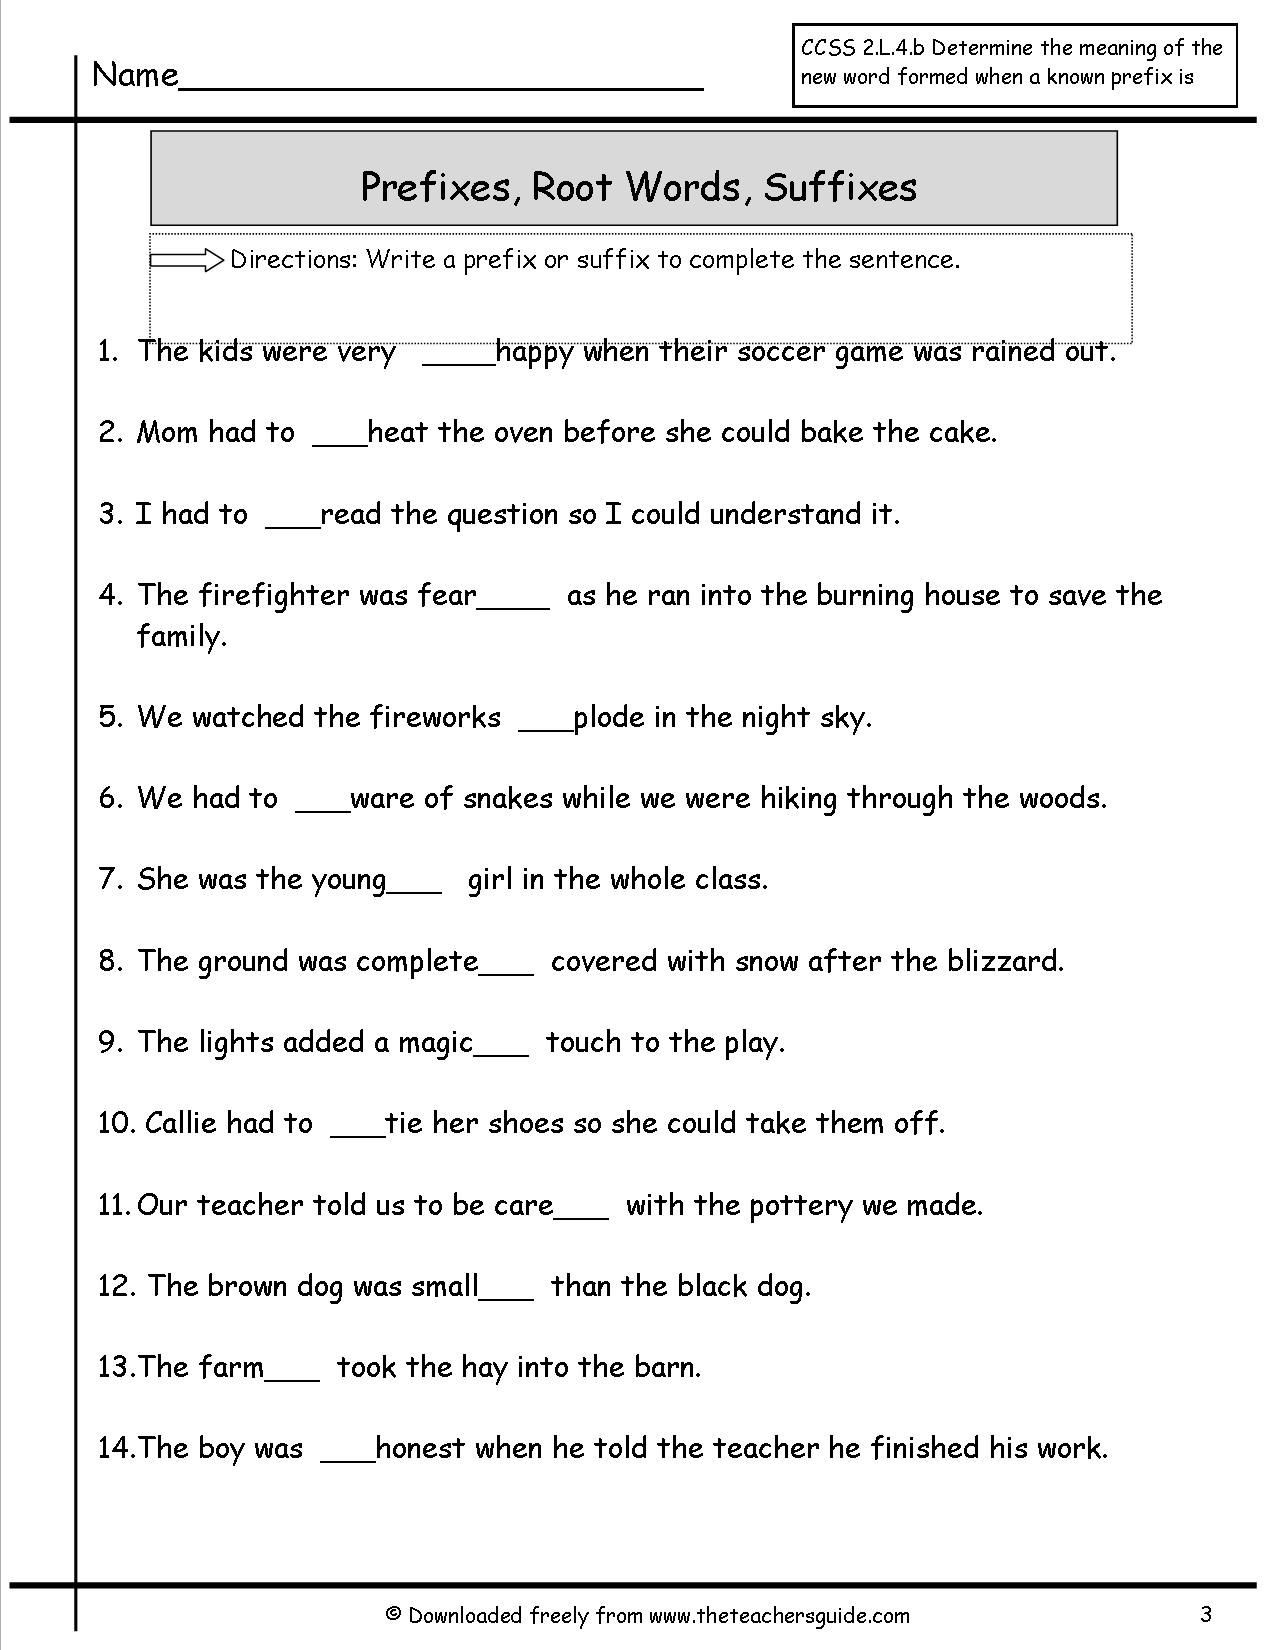 Suffixes Worksheet 3rd Grade Prefixes Suffixes Worksheet